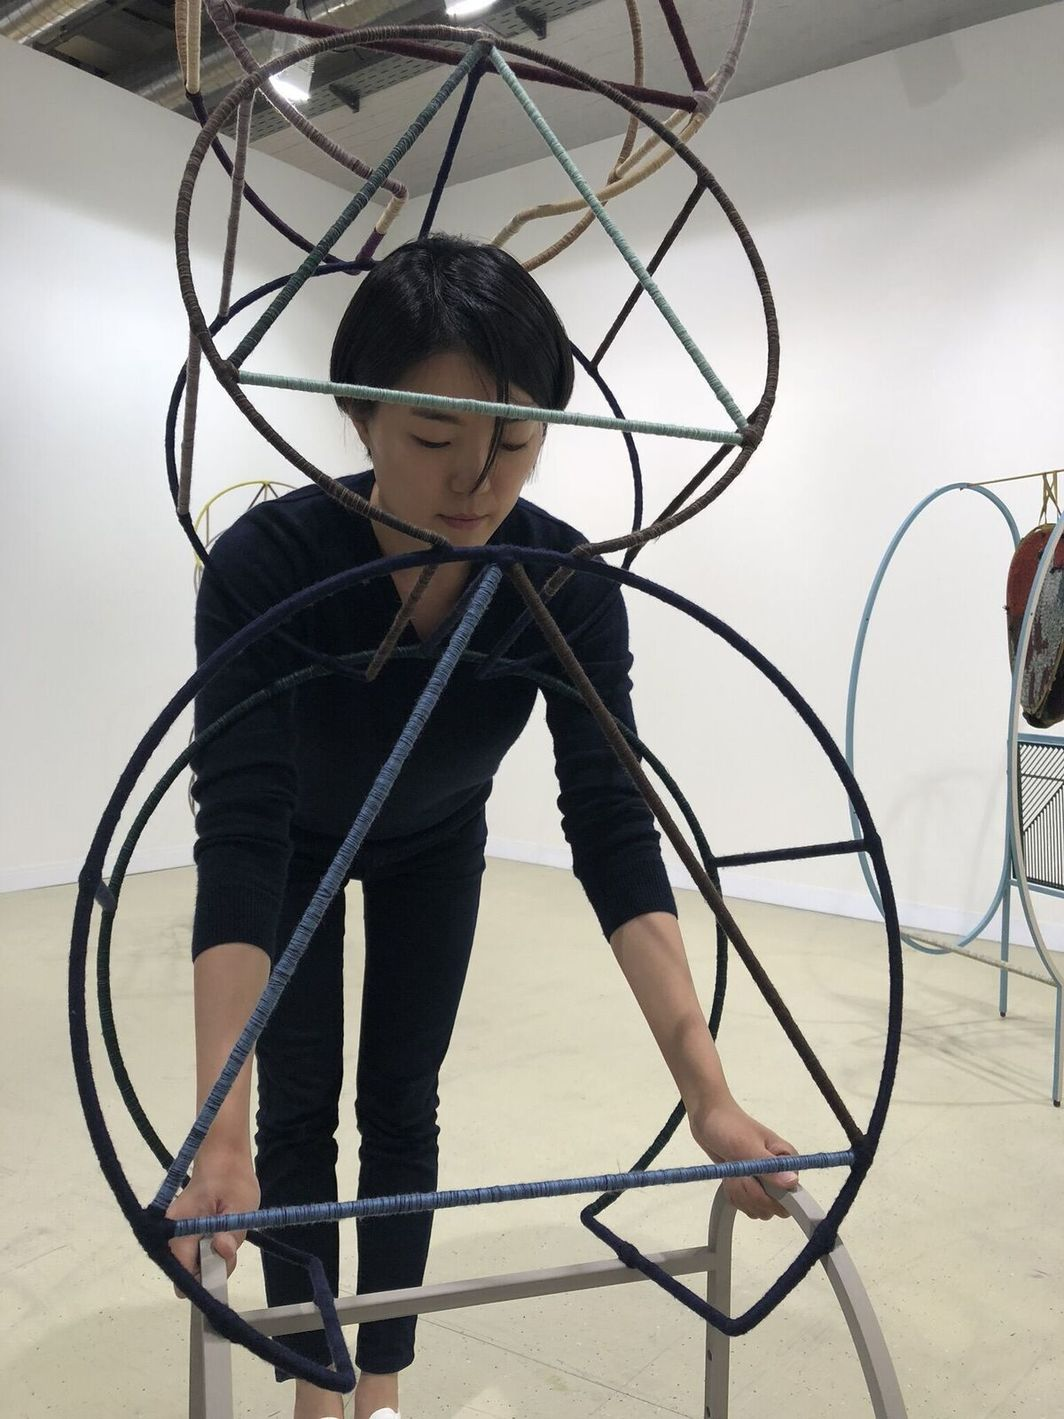 Dealer Meene An with interactive sculpture by Suki Seokyeong Kang.